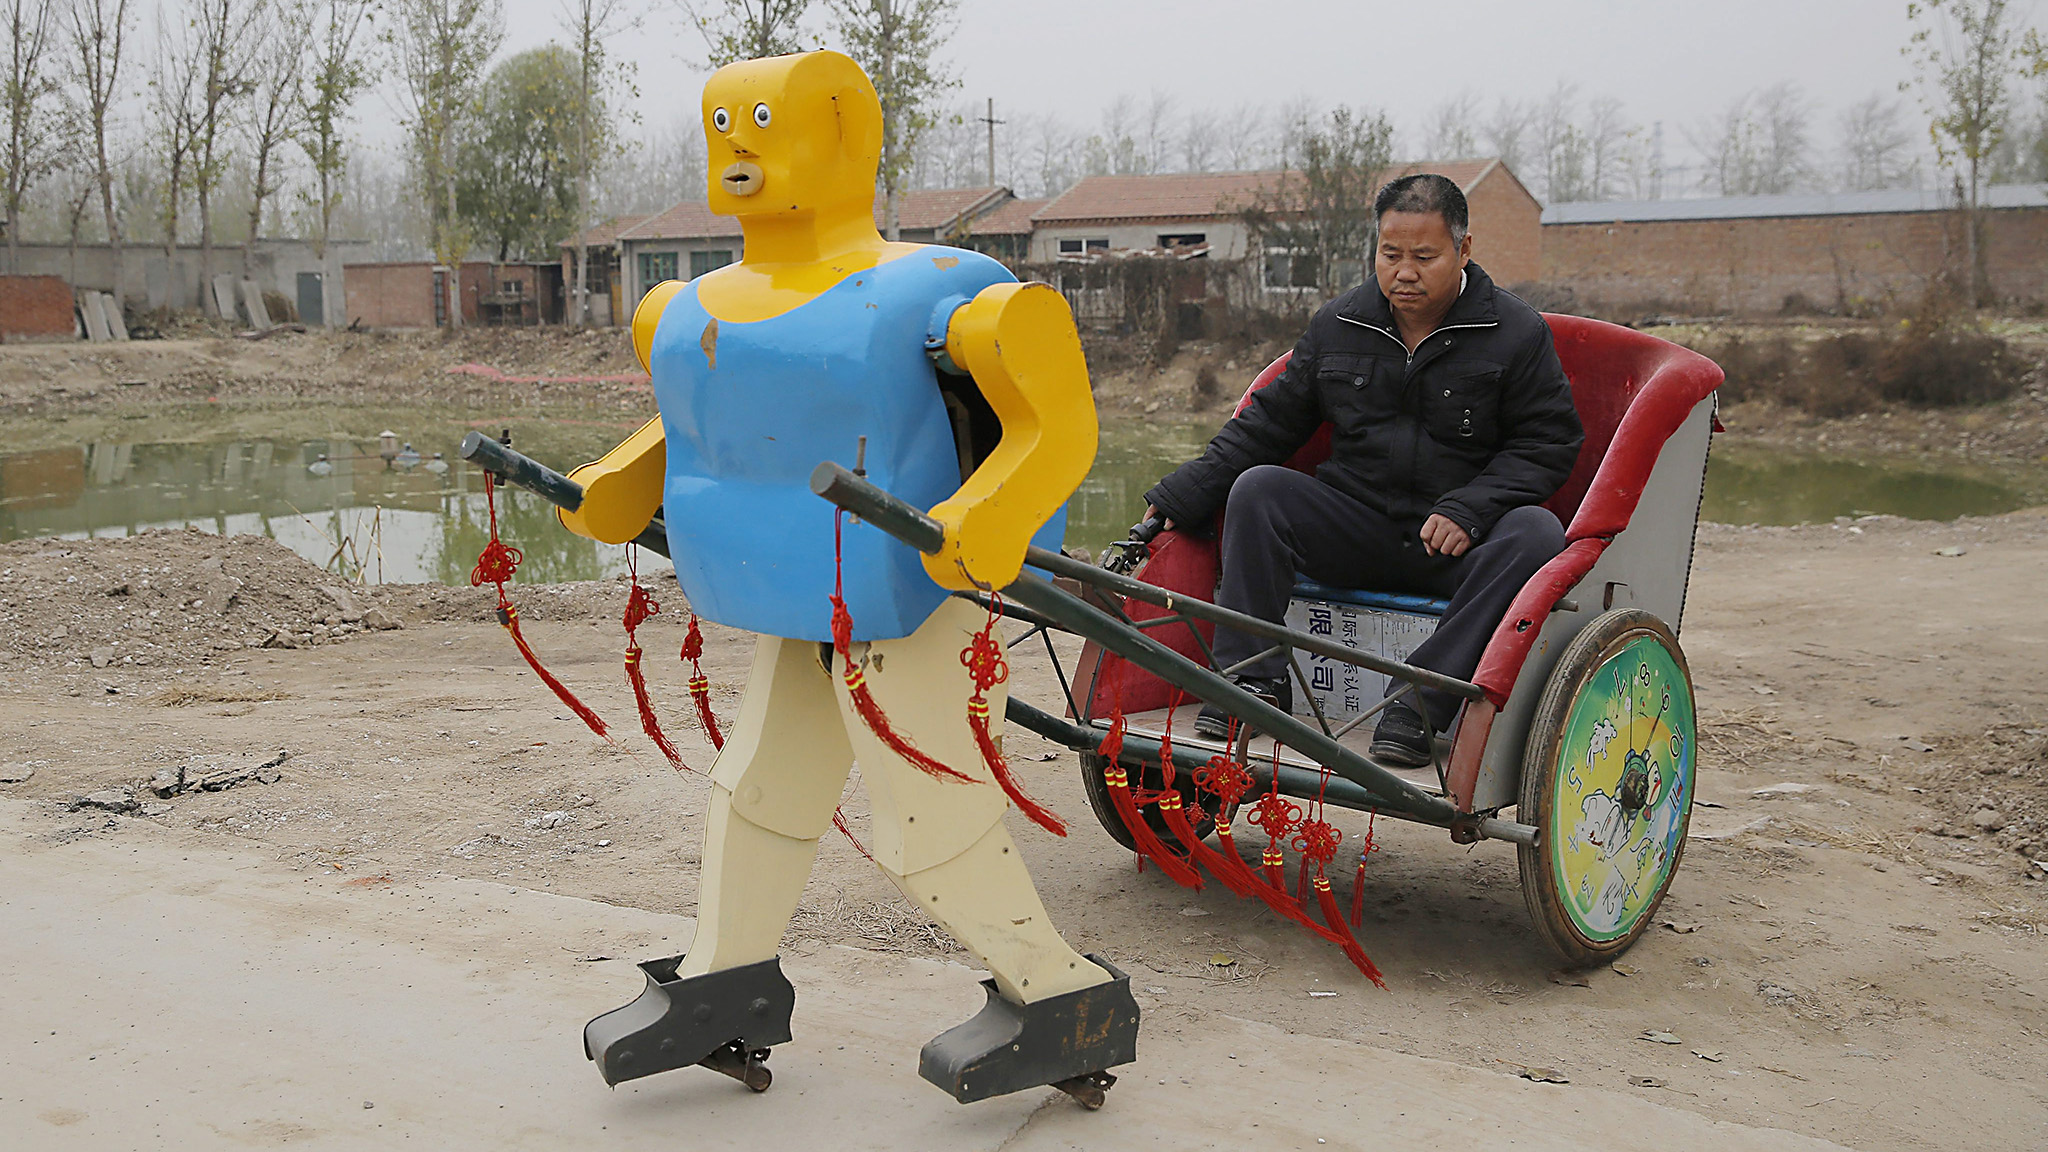 Robot inventor Wu Yulu sits on a rickshaw driven by a robot which he invented in his village in rural Beijing's Tongzhou district, China, 17 November 2016. The 54-year-old Chinese farmer living in rural Beijing's Tongzhou district invented 63 robots in the past 30 years. Wu, who only received primary school education, plans to give up the agricultural work for his robot products. He regularly participates in exhibitions, transfers patent rights and teaches at the university to earn money.  EPA/WU HONG